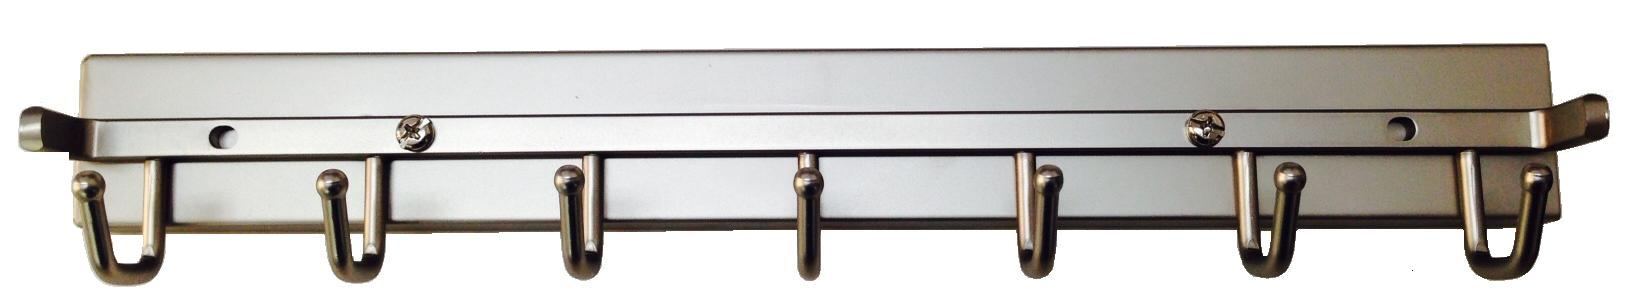 Satin Nickel Closet Belt Rack With Push To Open Slides.